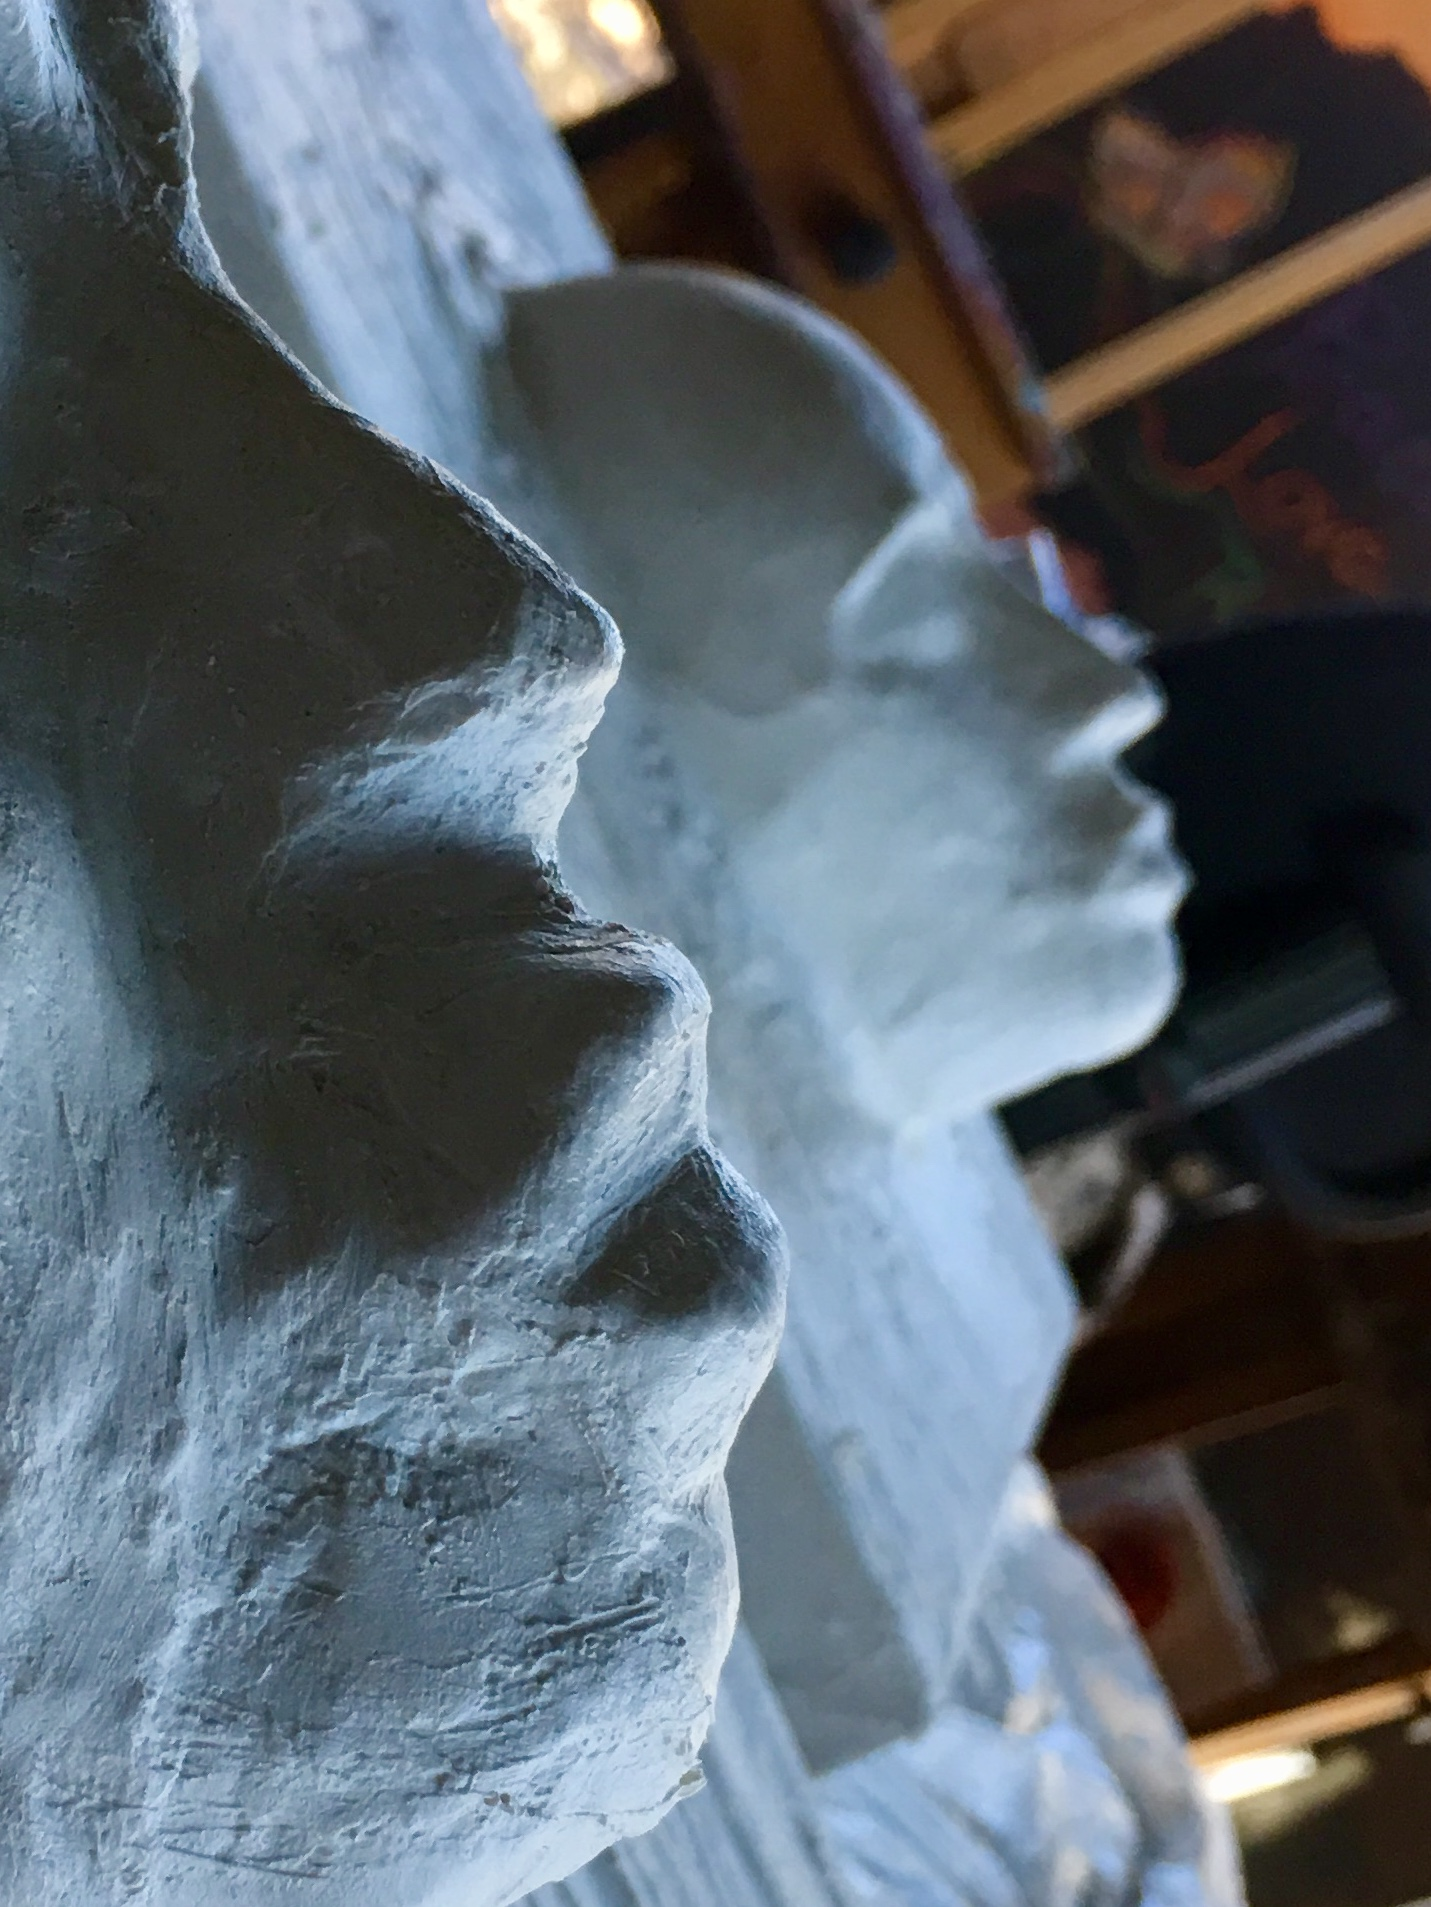 Plaster faces on canvas.